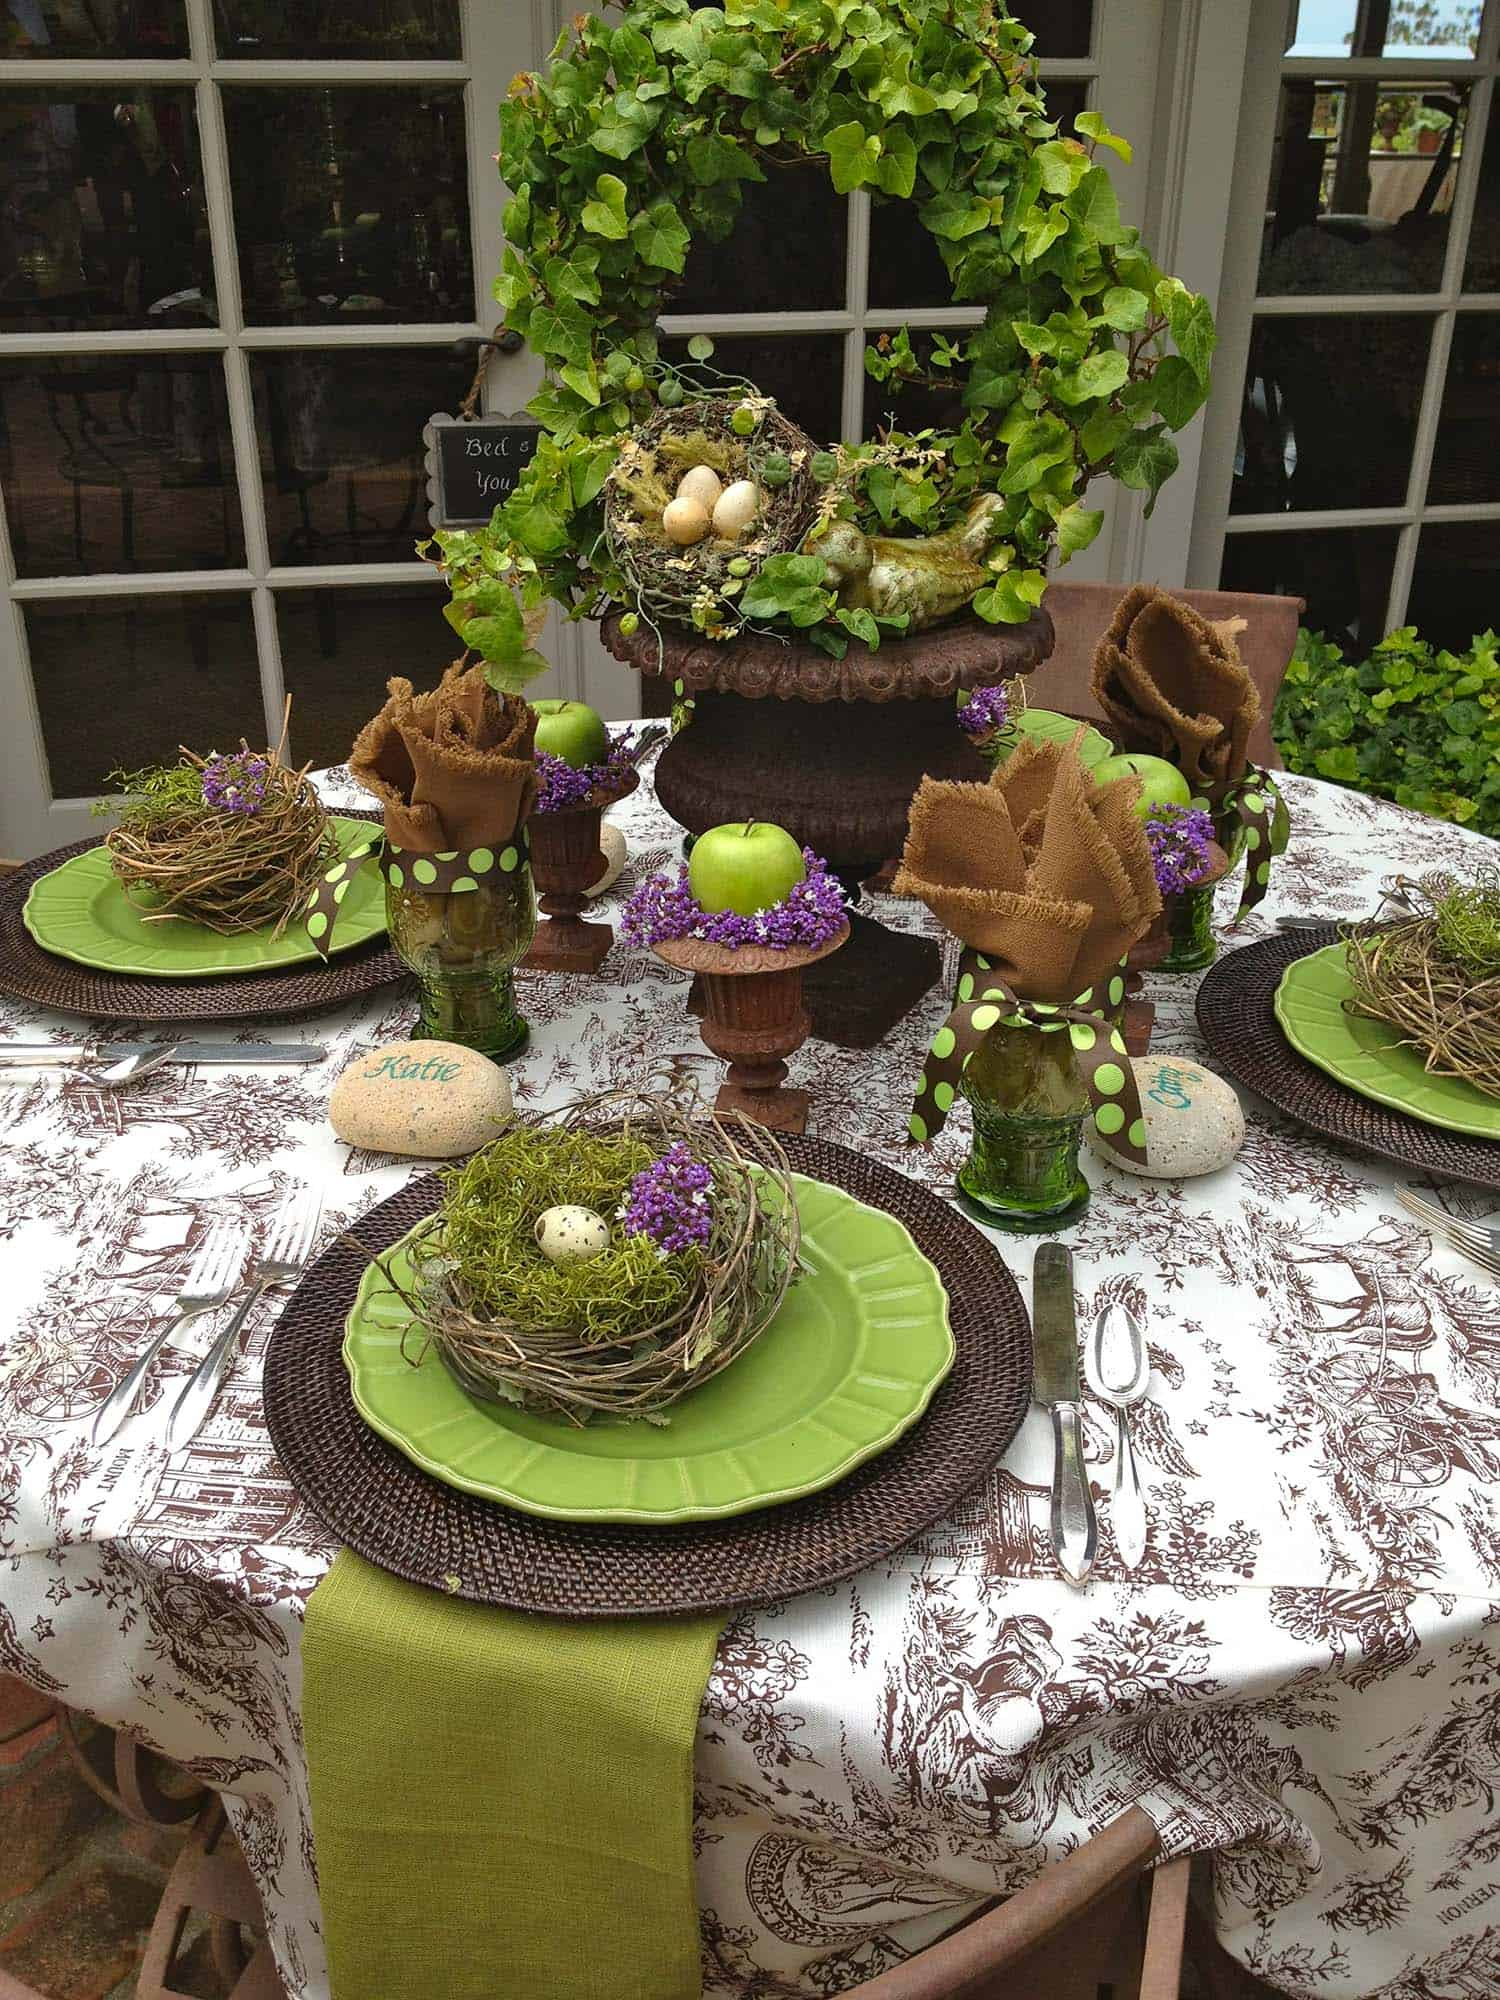 Inspiring Easter Table Centerpiece Ideas-08-1 Kindesign